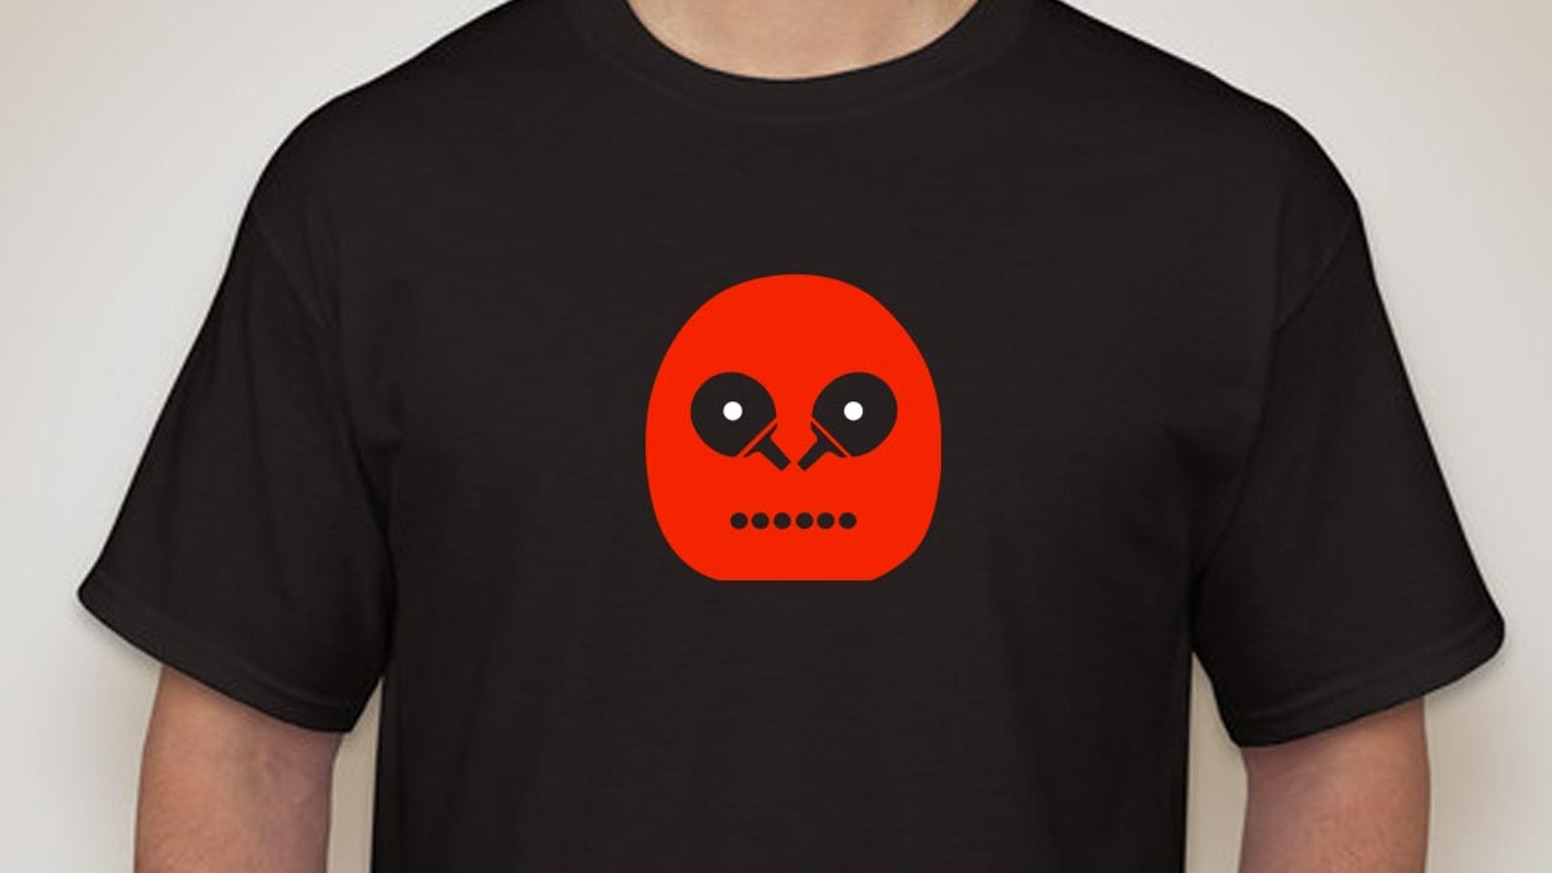 Design t shirt company - I Ll Put A Link Here If And When I Find A Print On Demand